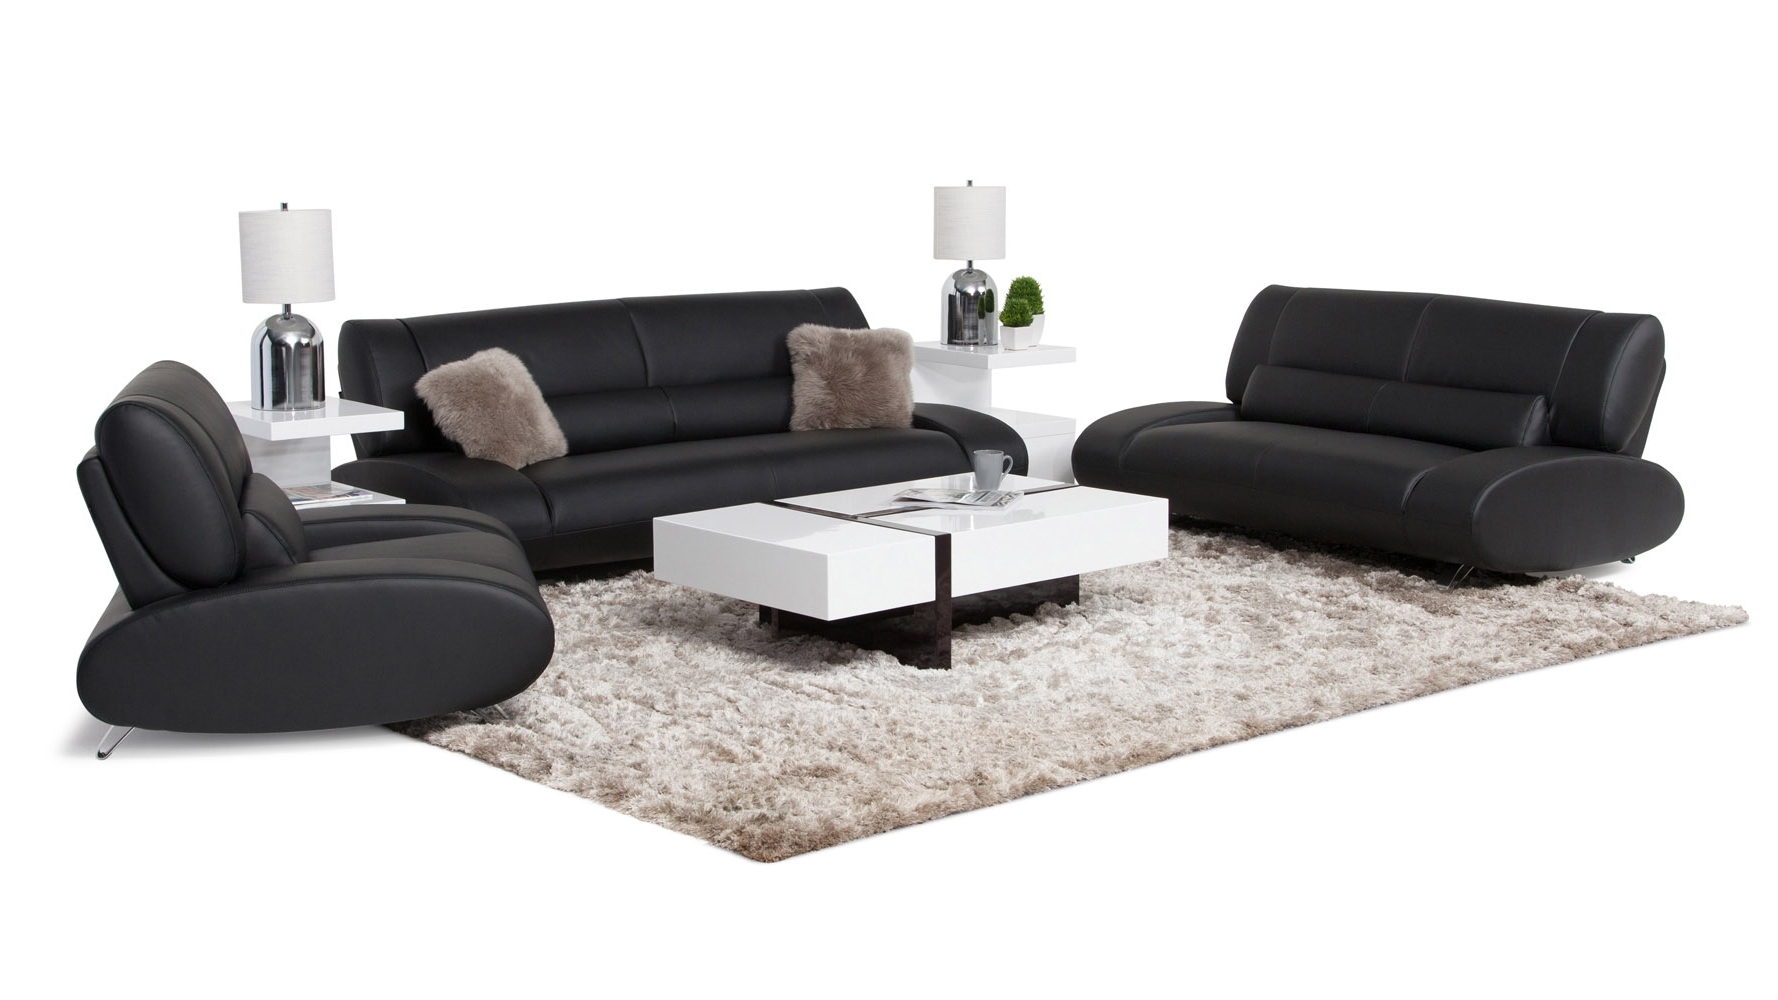 Zuri Furniture Within Aspen Leather Sofas (Gallery 12 of 20)